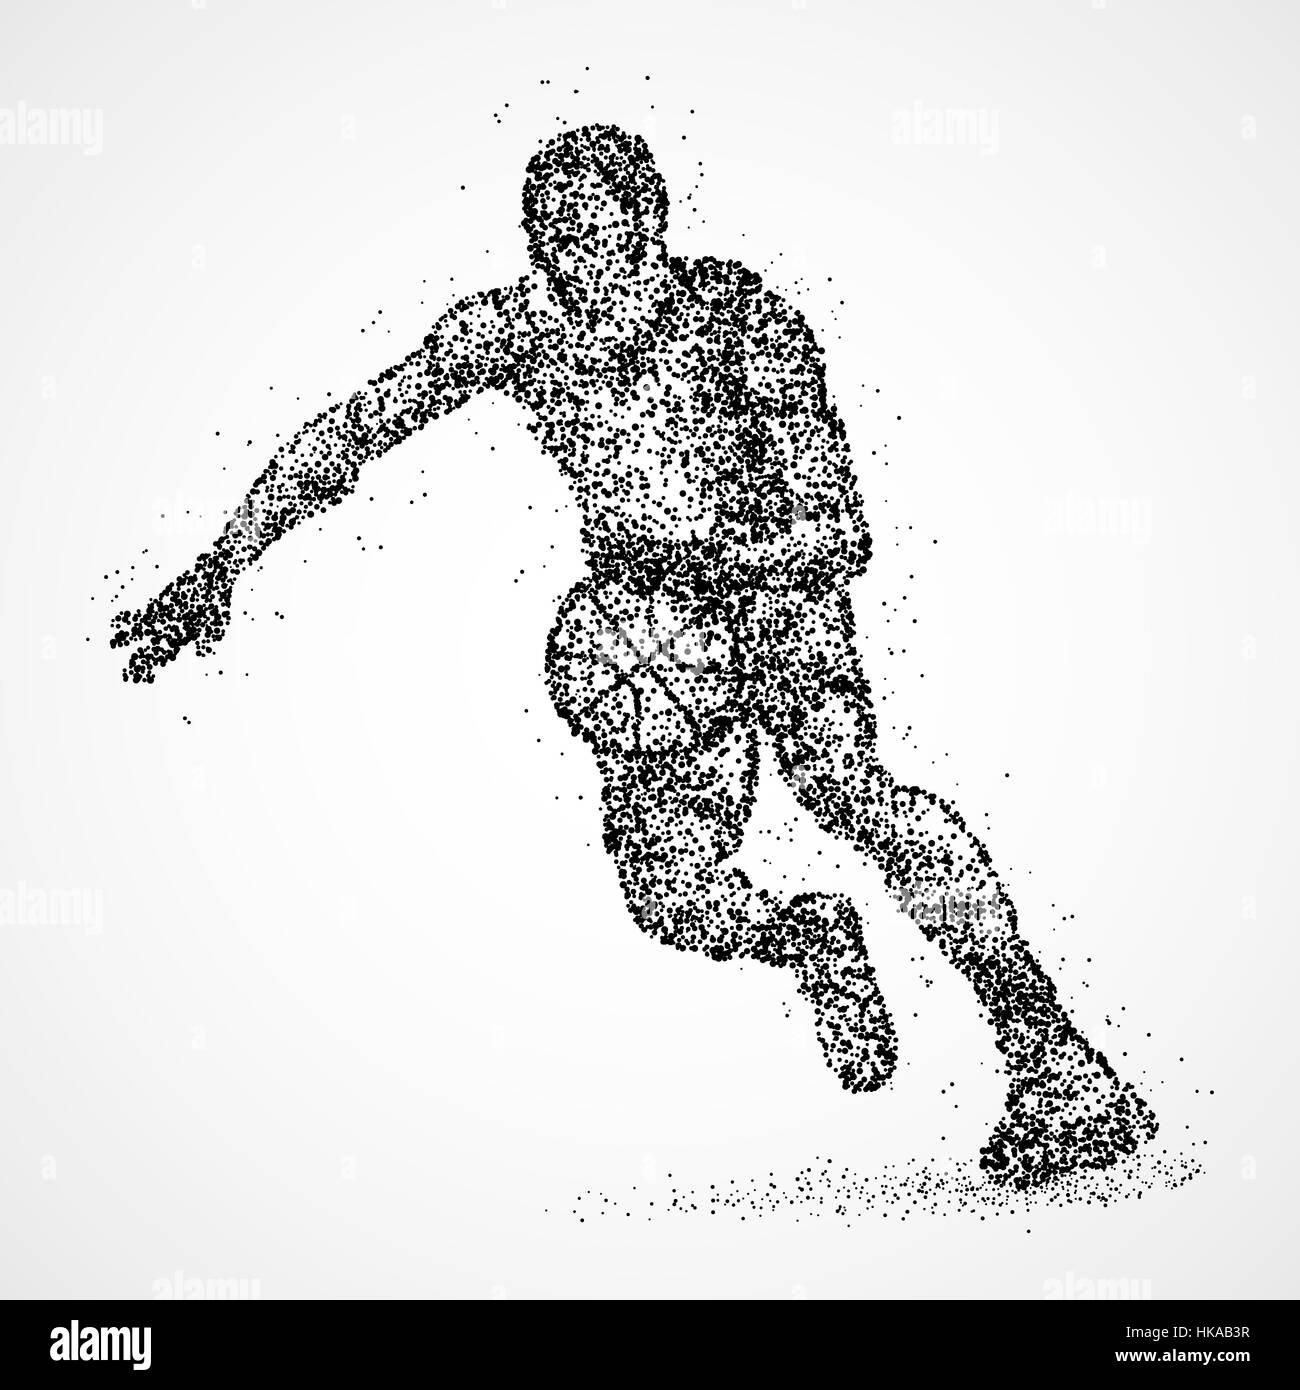 Abstract basketball player of the black circles. Photo illustration. - Stock Image